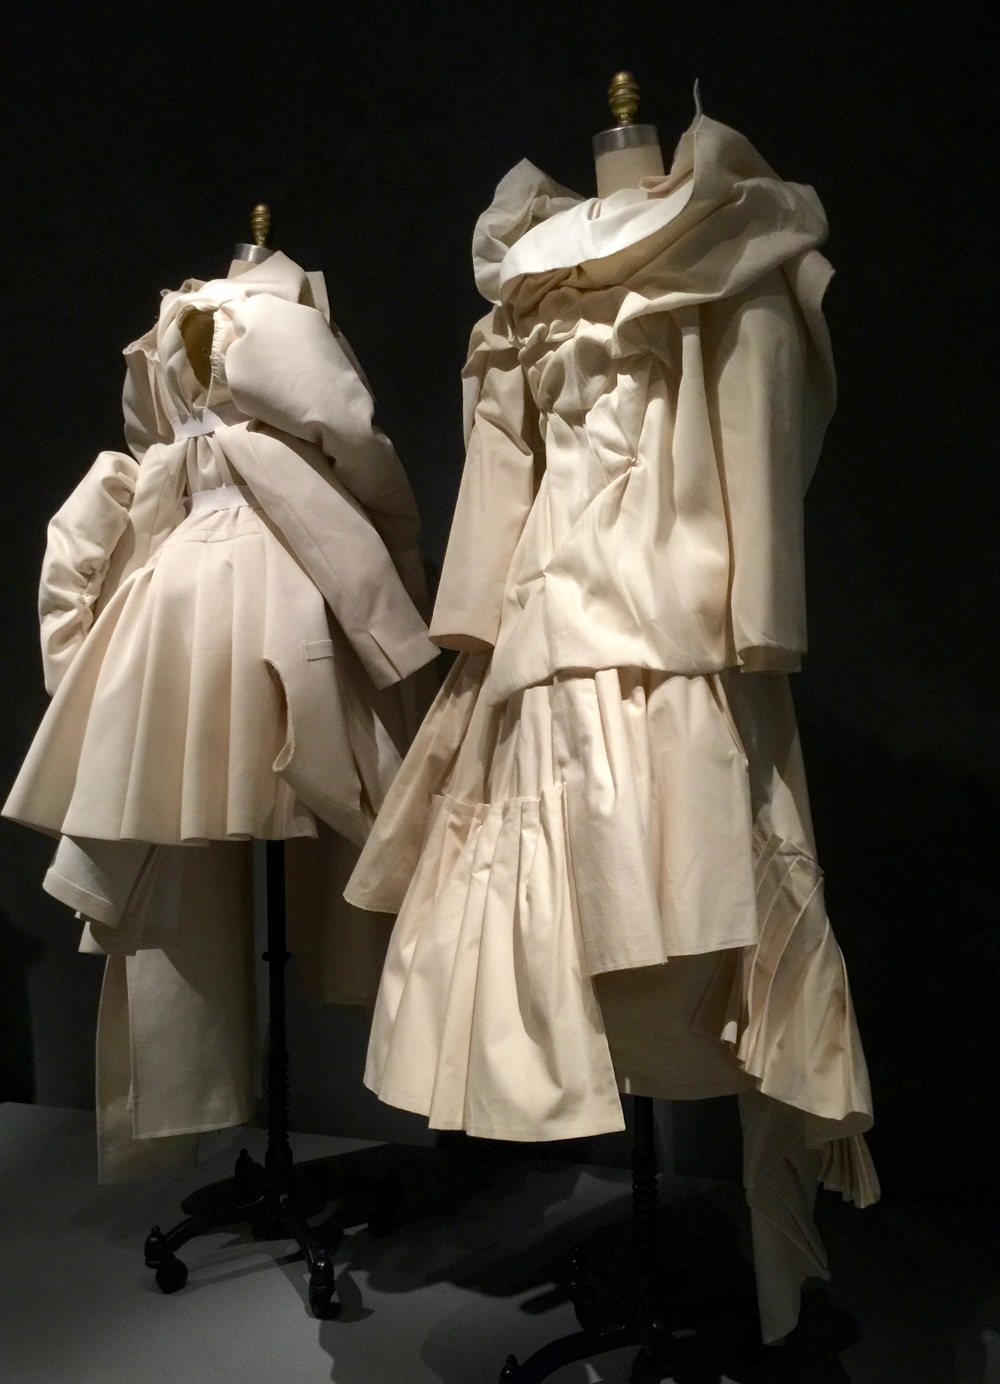 (l) COMME DES GARCONS, Rei Kawakubo ENSEMBLE, Spring/Summer 2013, pret-a-porter  Dress:  machine-sewn ivory cotton twill and canvas with white elastic and hand-gathered and hand-sewn attachments; skirt:  machine-sewn hand-pleated ivory twill (r) VIKTOR & ROLF ENSEMBLE, Spring/Summer 1998, haute couture  Machine and hand-sewn white cotton calico with hand-sewn folds and pleated attachments.